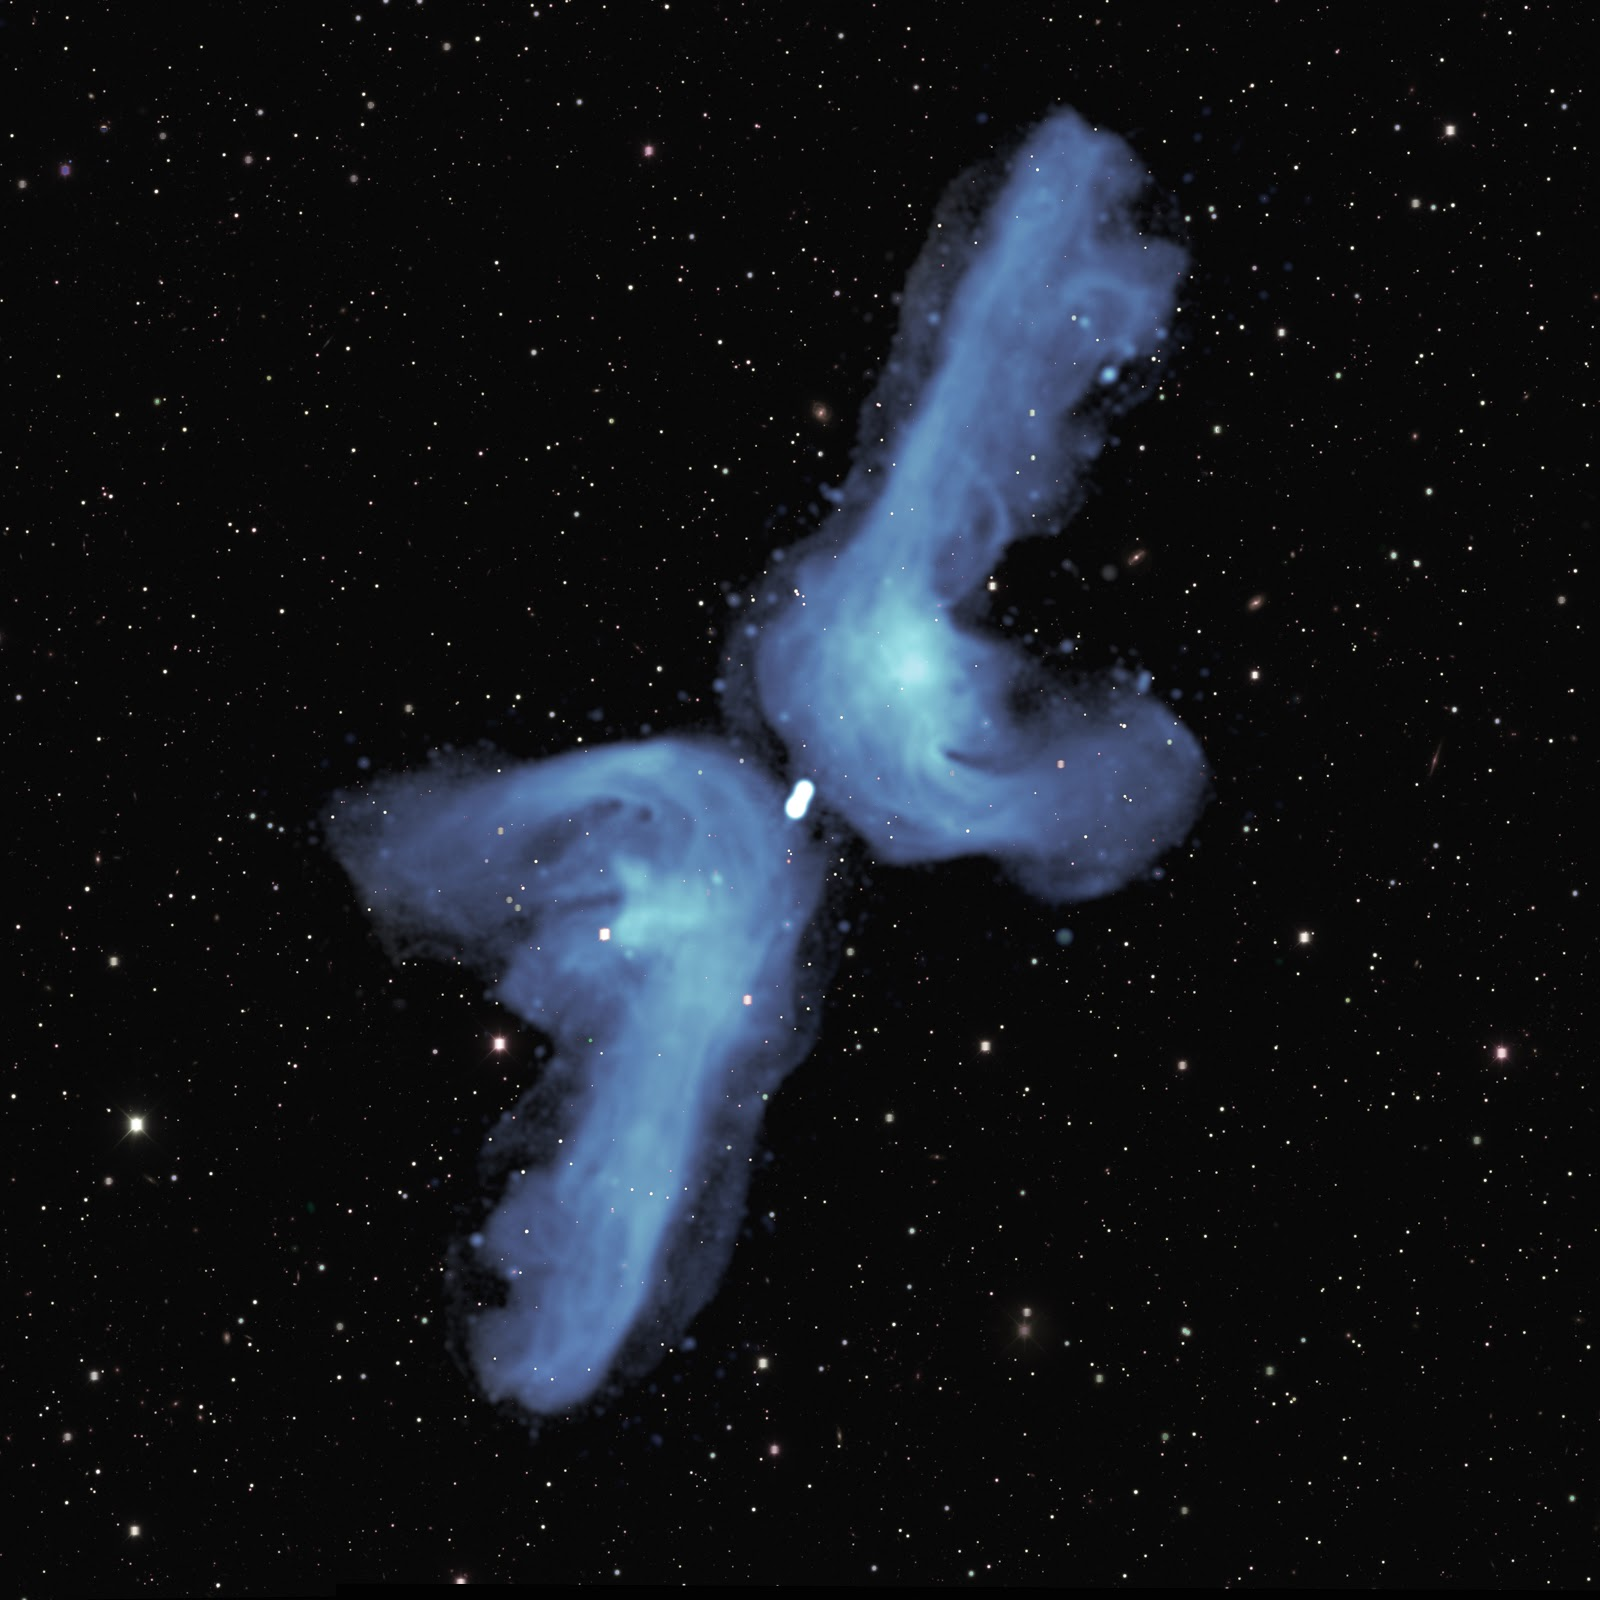 The 'double boomerang' of an x-shaped radio galaxy